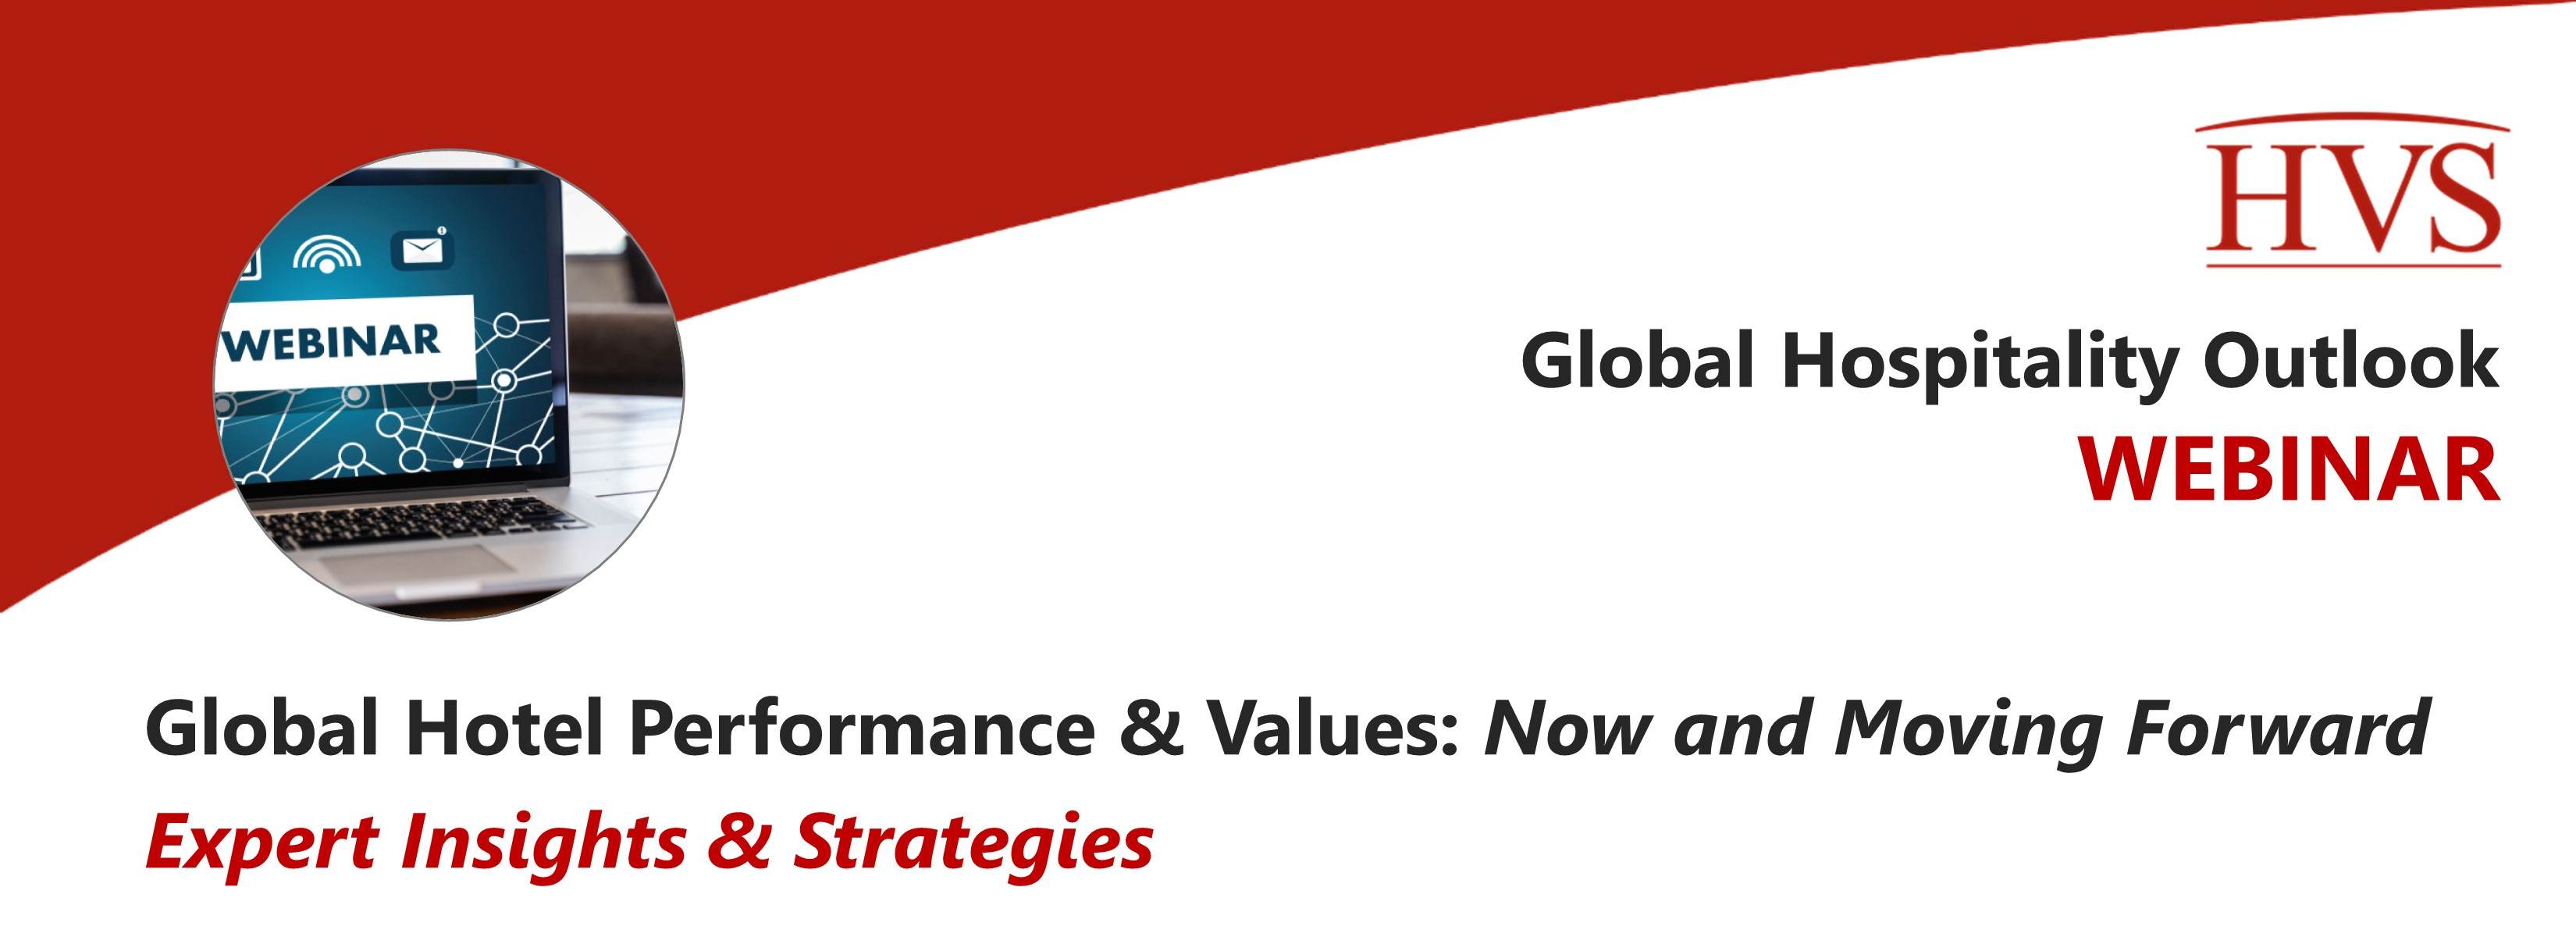 Global Hotel Performance & Values: Now And Moving Forward | Expert Insights & Strategies